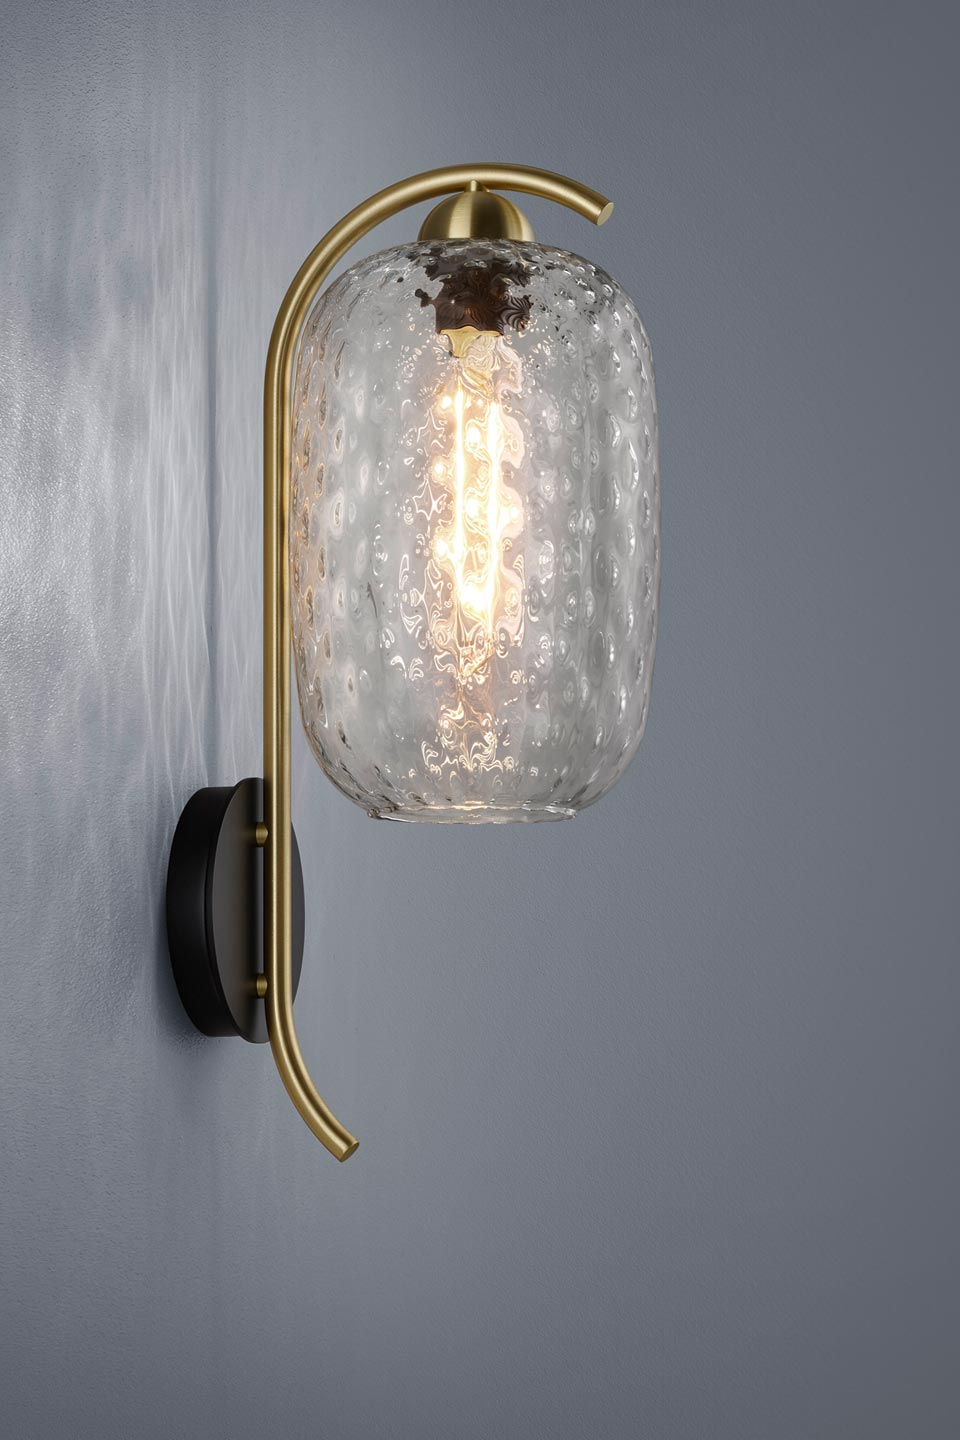 Leuchten Bilder Golden And Design Wall Lamp With Carved Glass: Baulmann Leuchten Luxury Lightings Made In Germany - Réf. 19030132